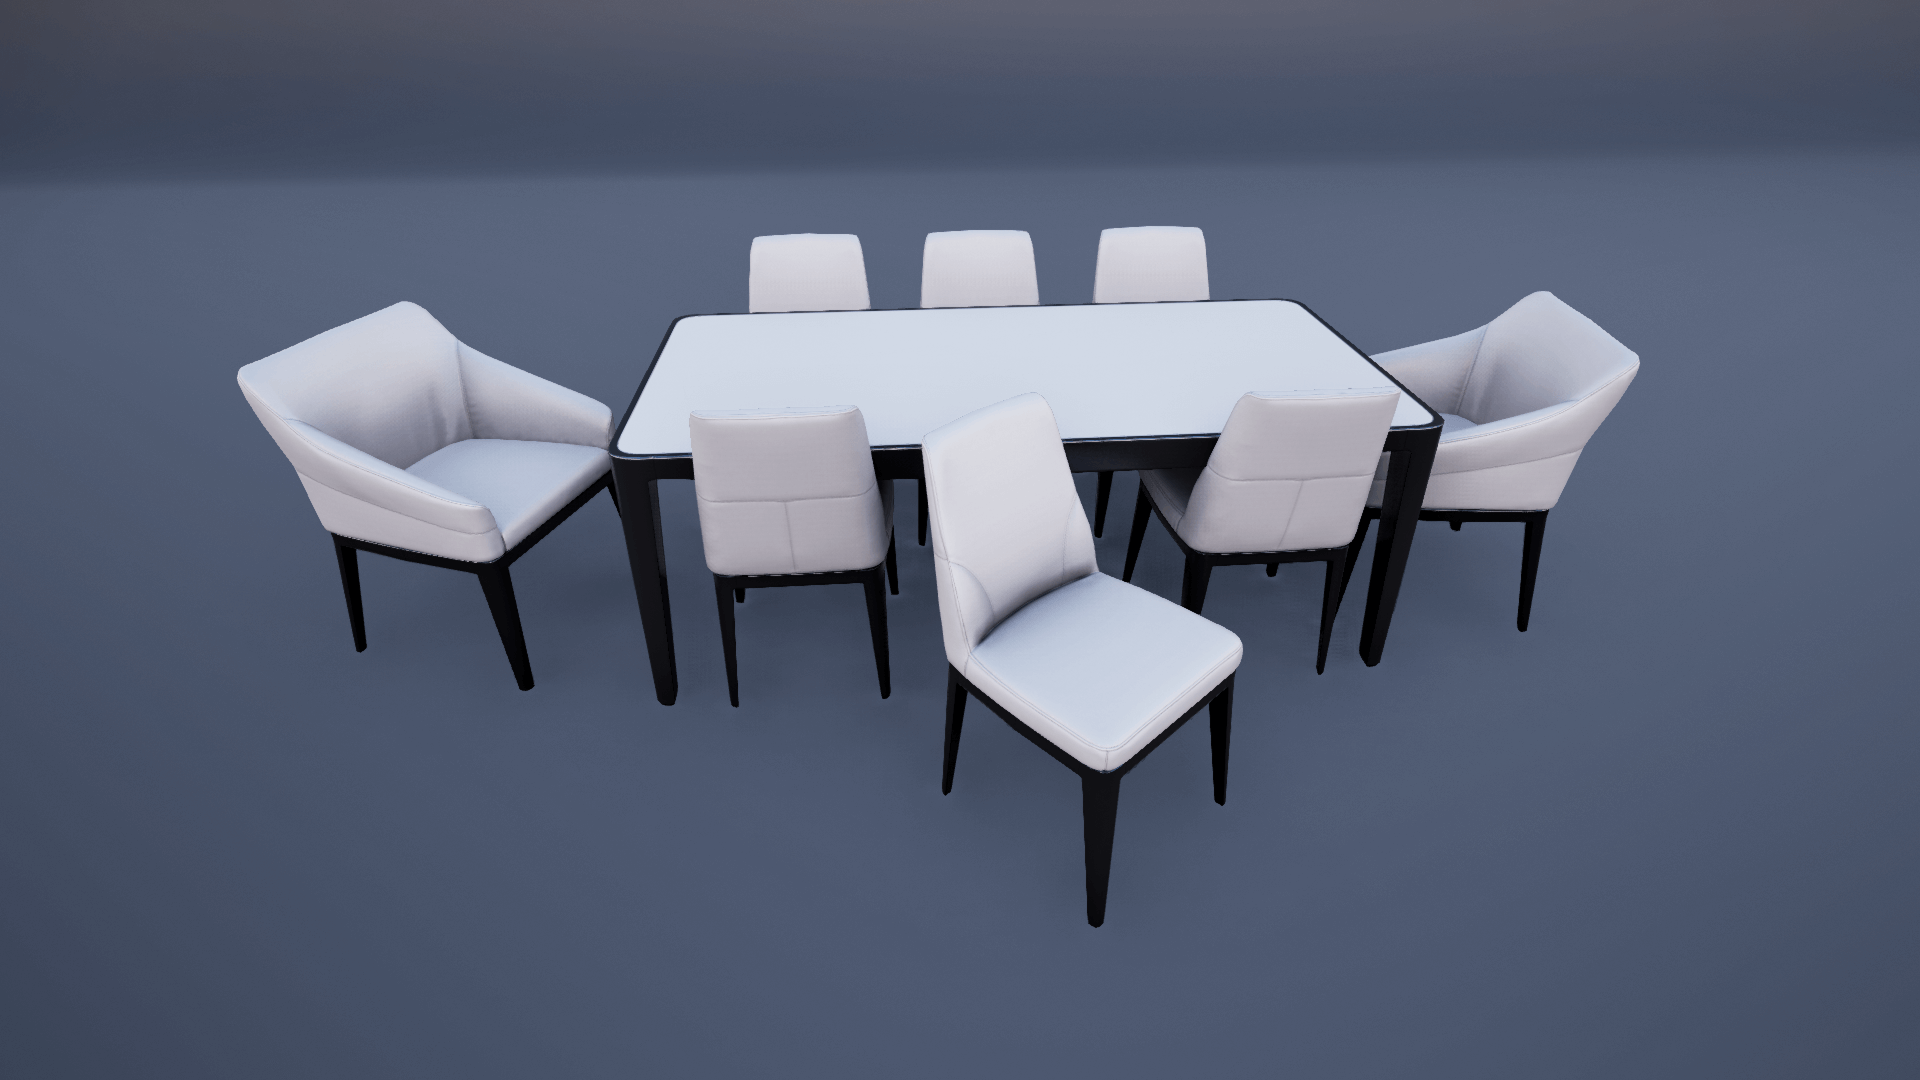 Hq modern furniture pack by next level 3d in architectural visualization ue4 marketplace